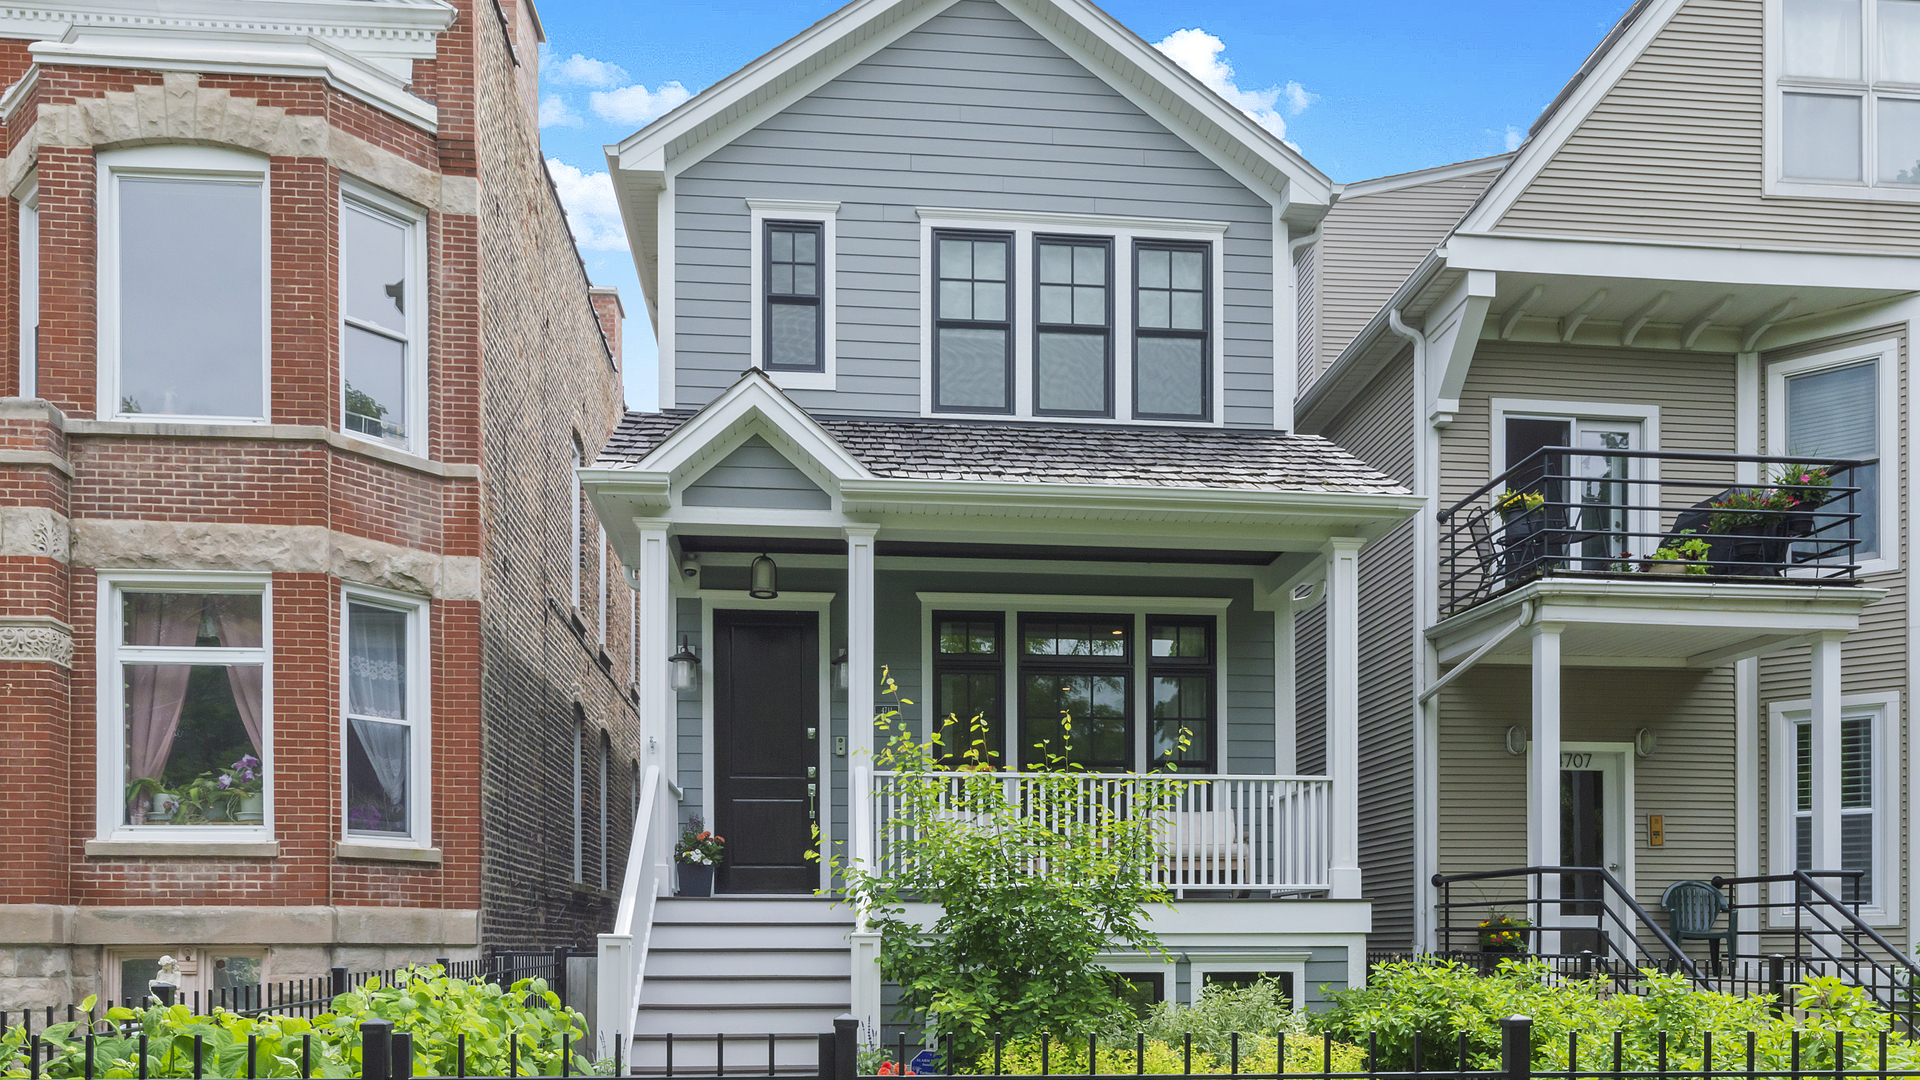 4711 North Hermitage Avenue, one of homes for sale in Chicago Uptown